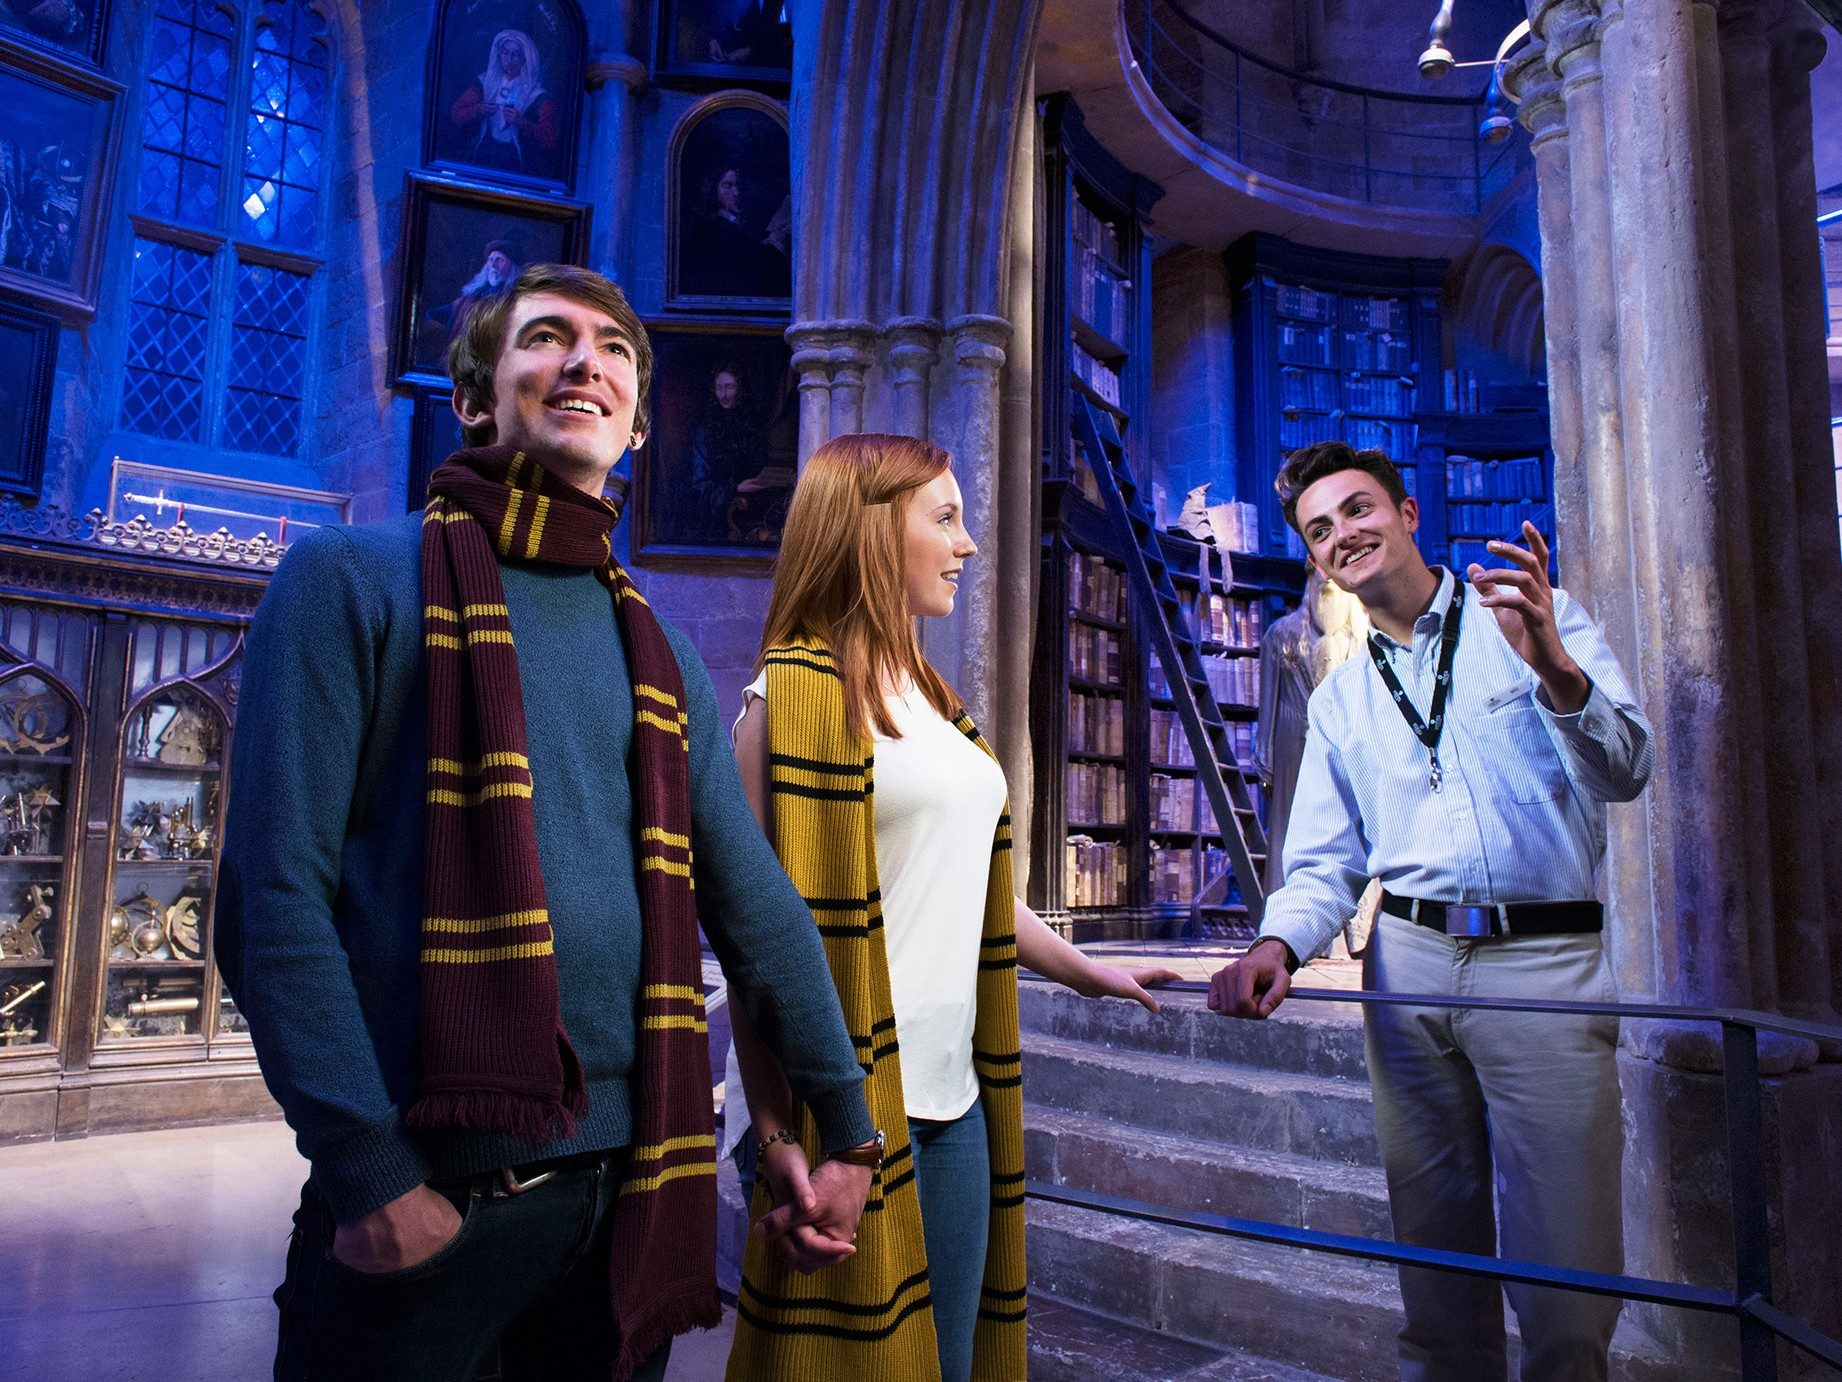 London attractions: Harry Potter Studio Tour